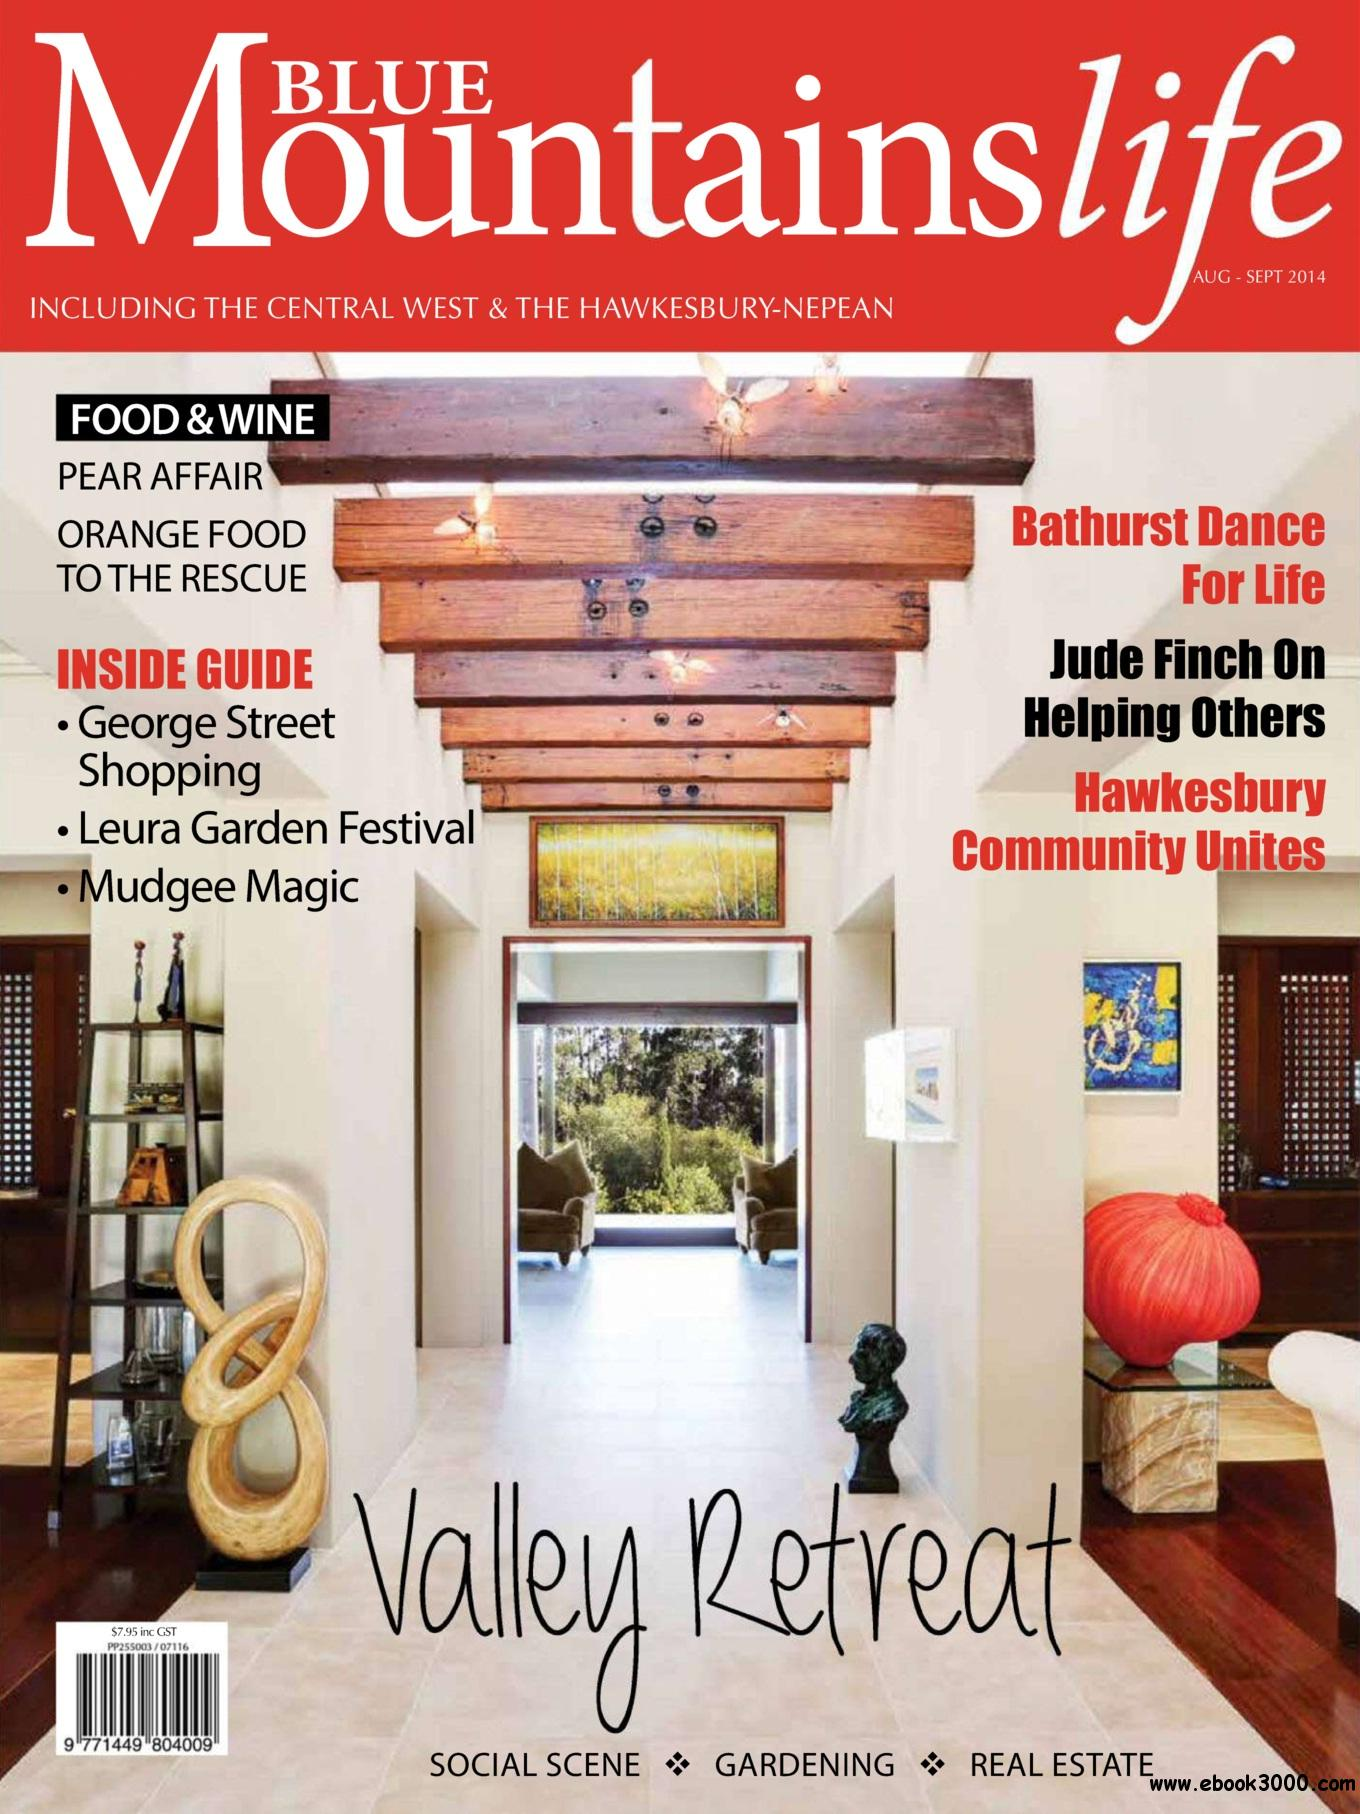 Blue Mountains Life - August / September 2014 free download